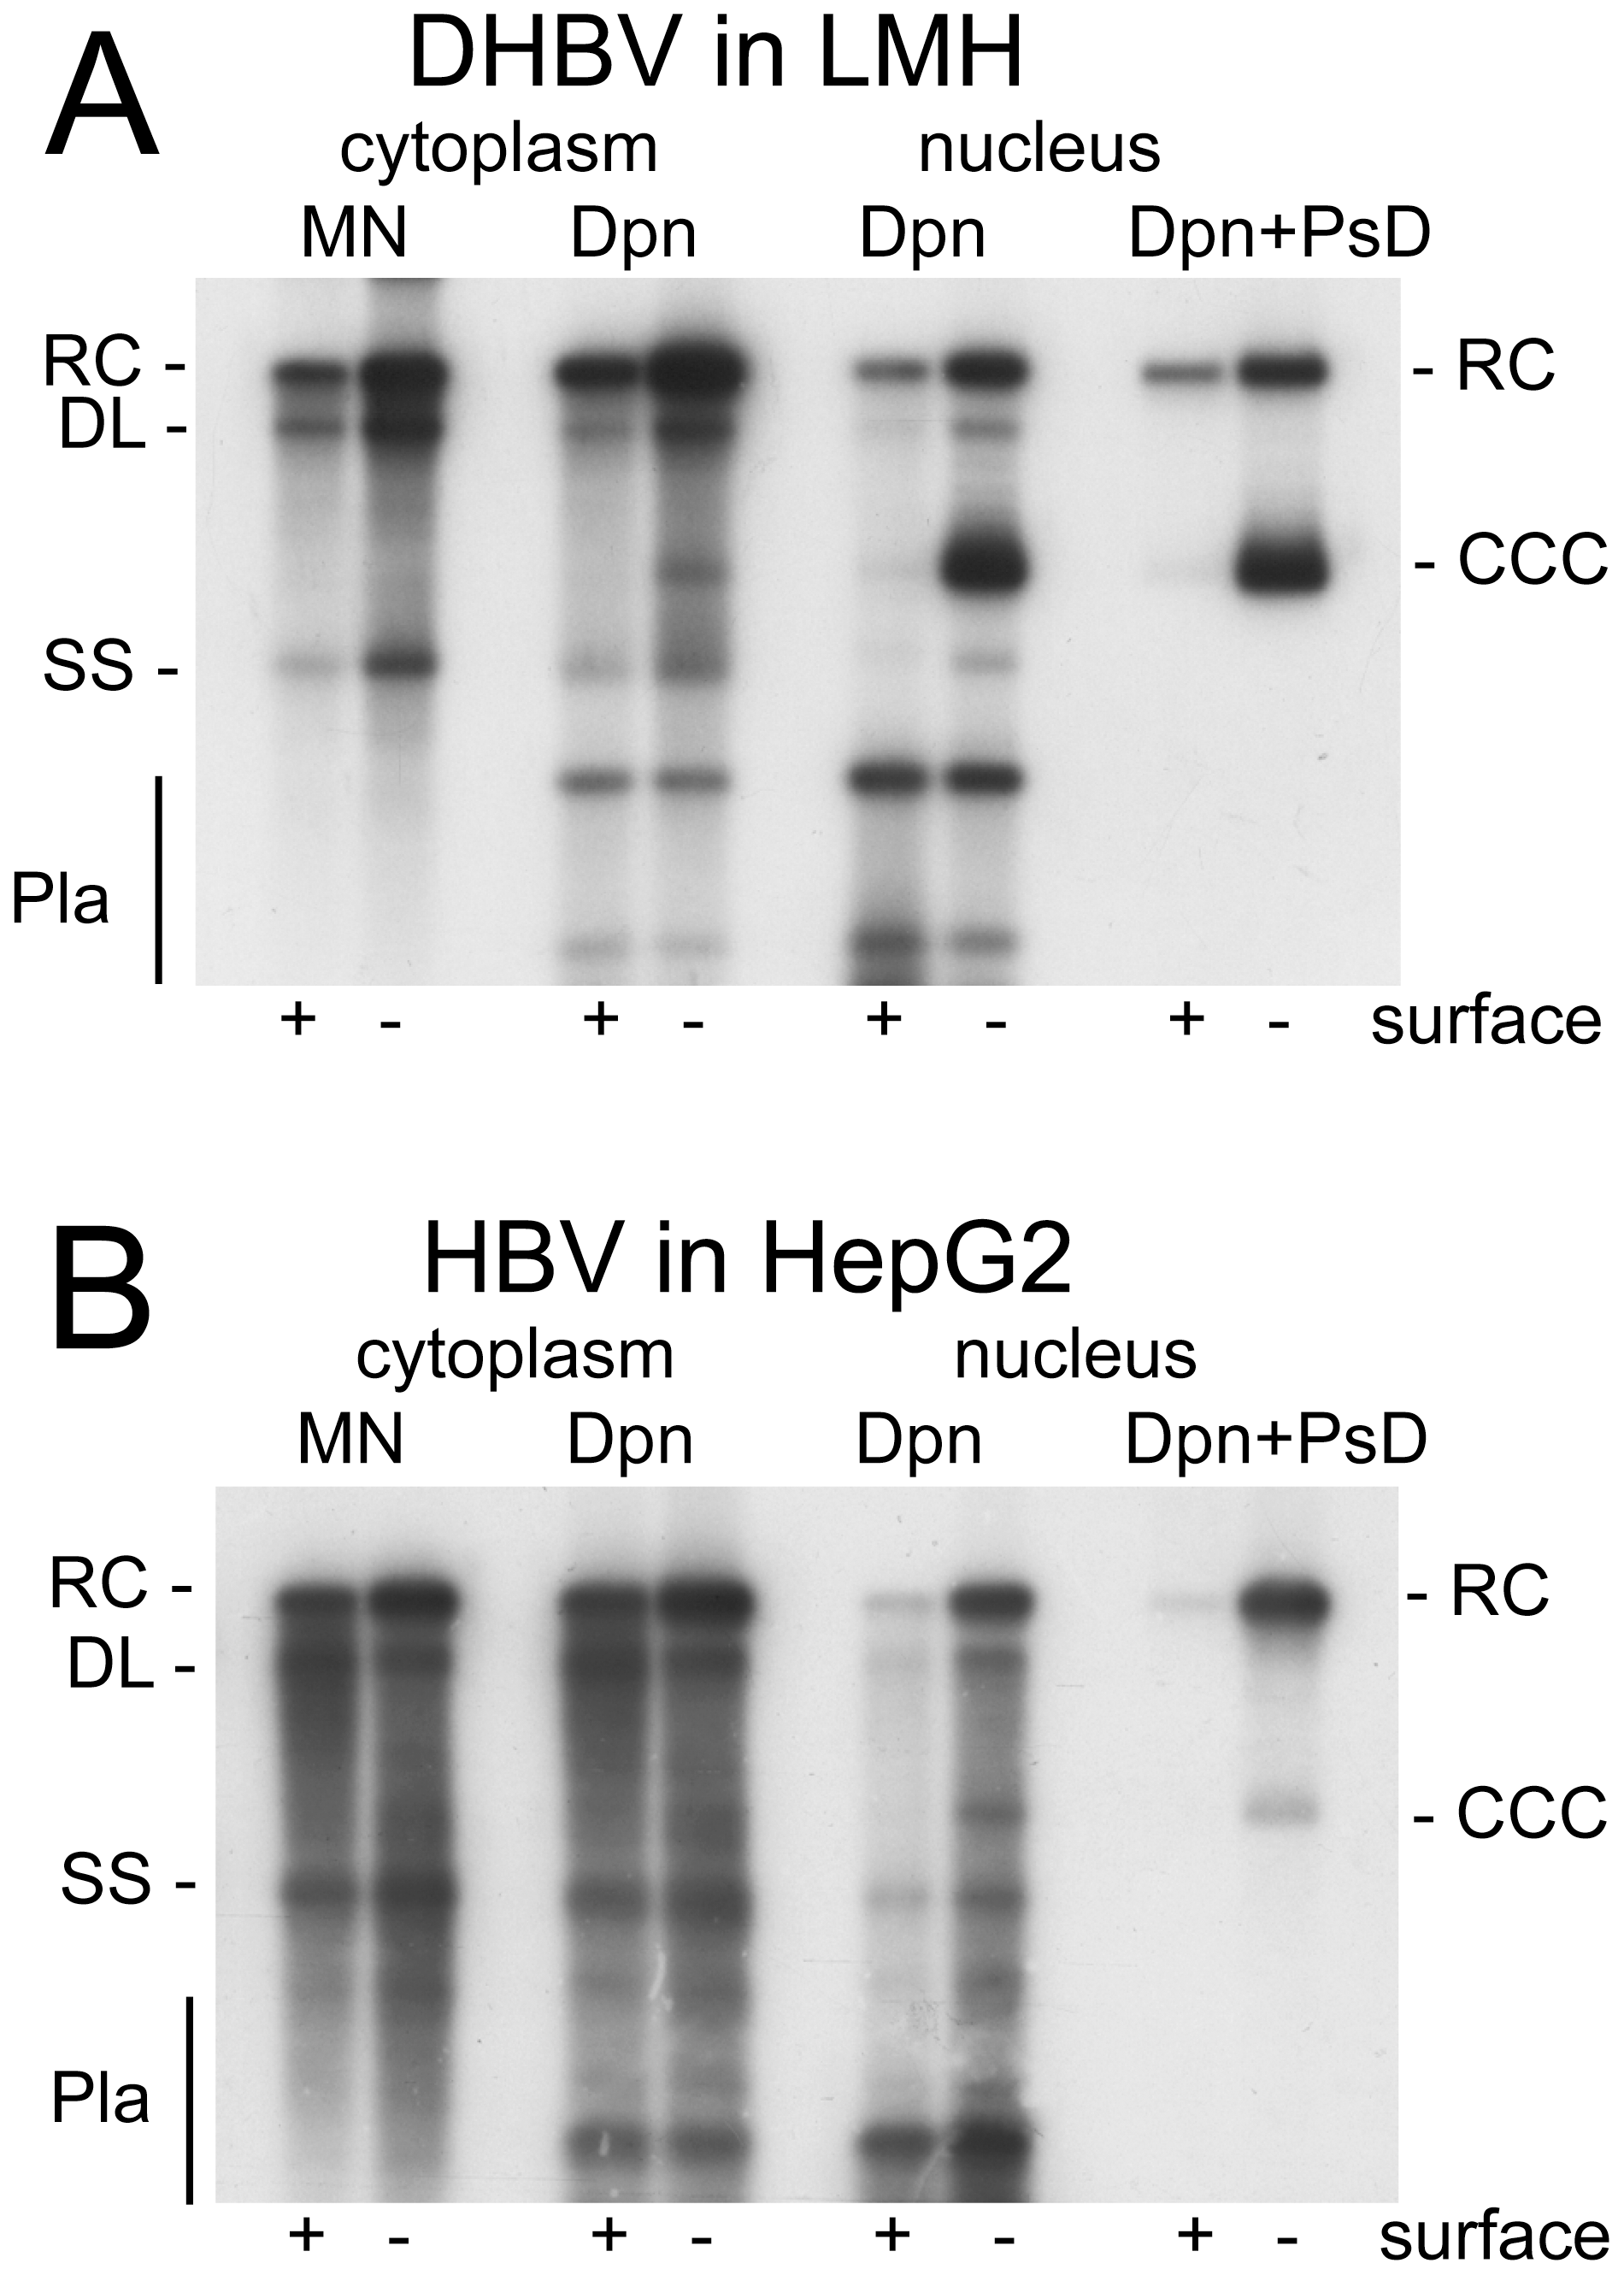 DHBV replication in avian cells and HBV replication in human cells.